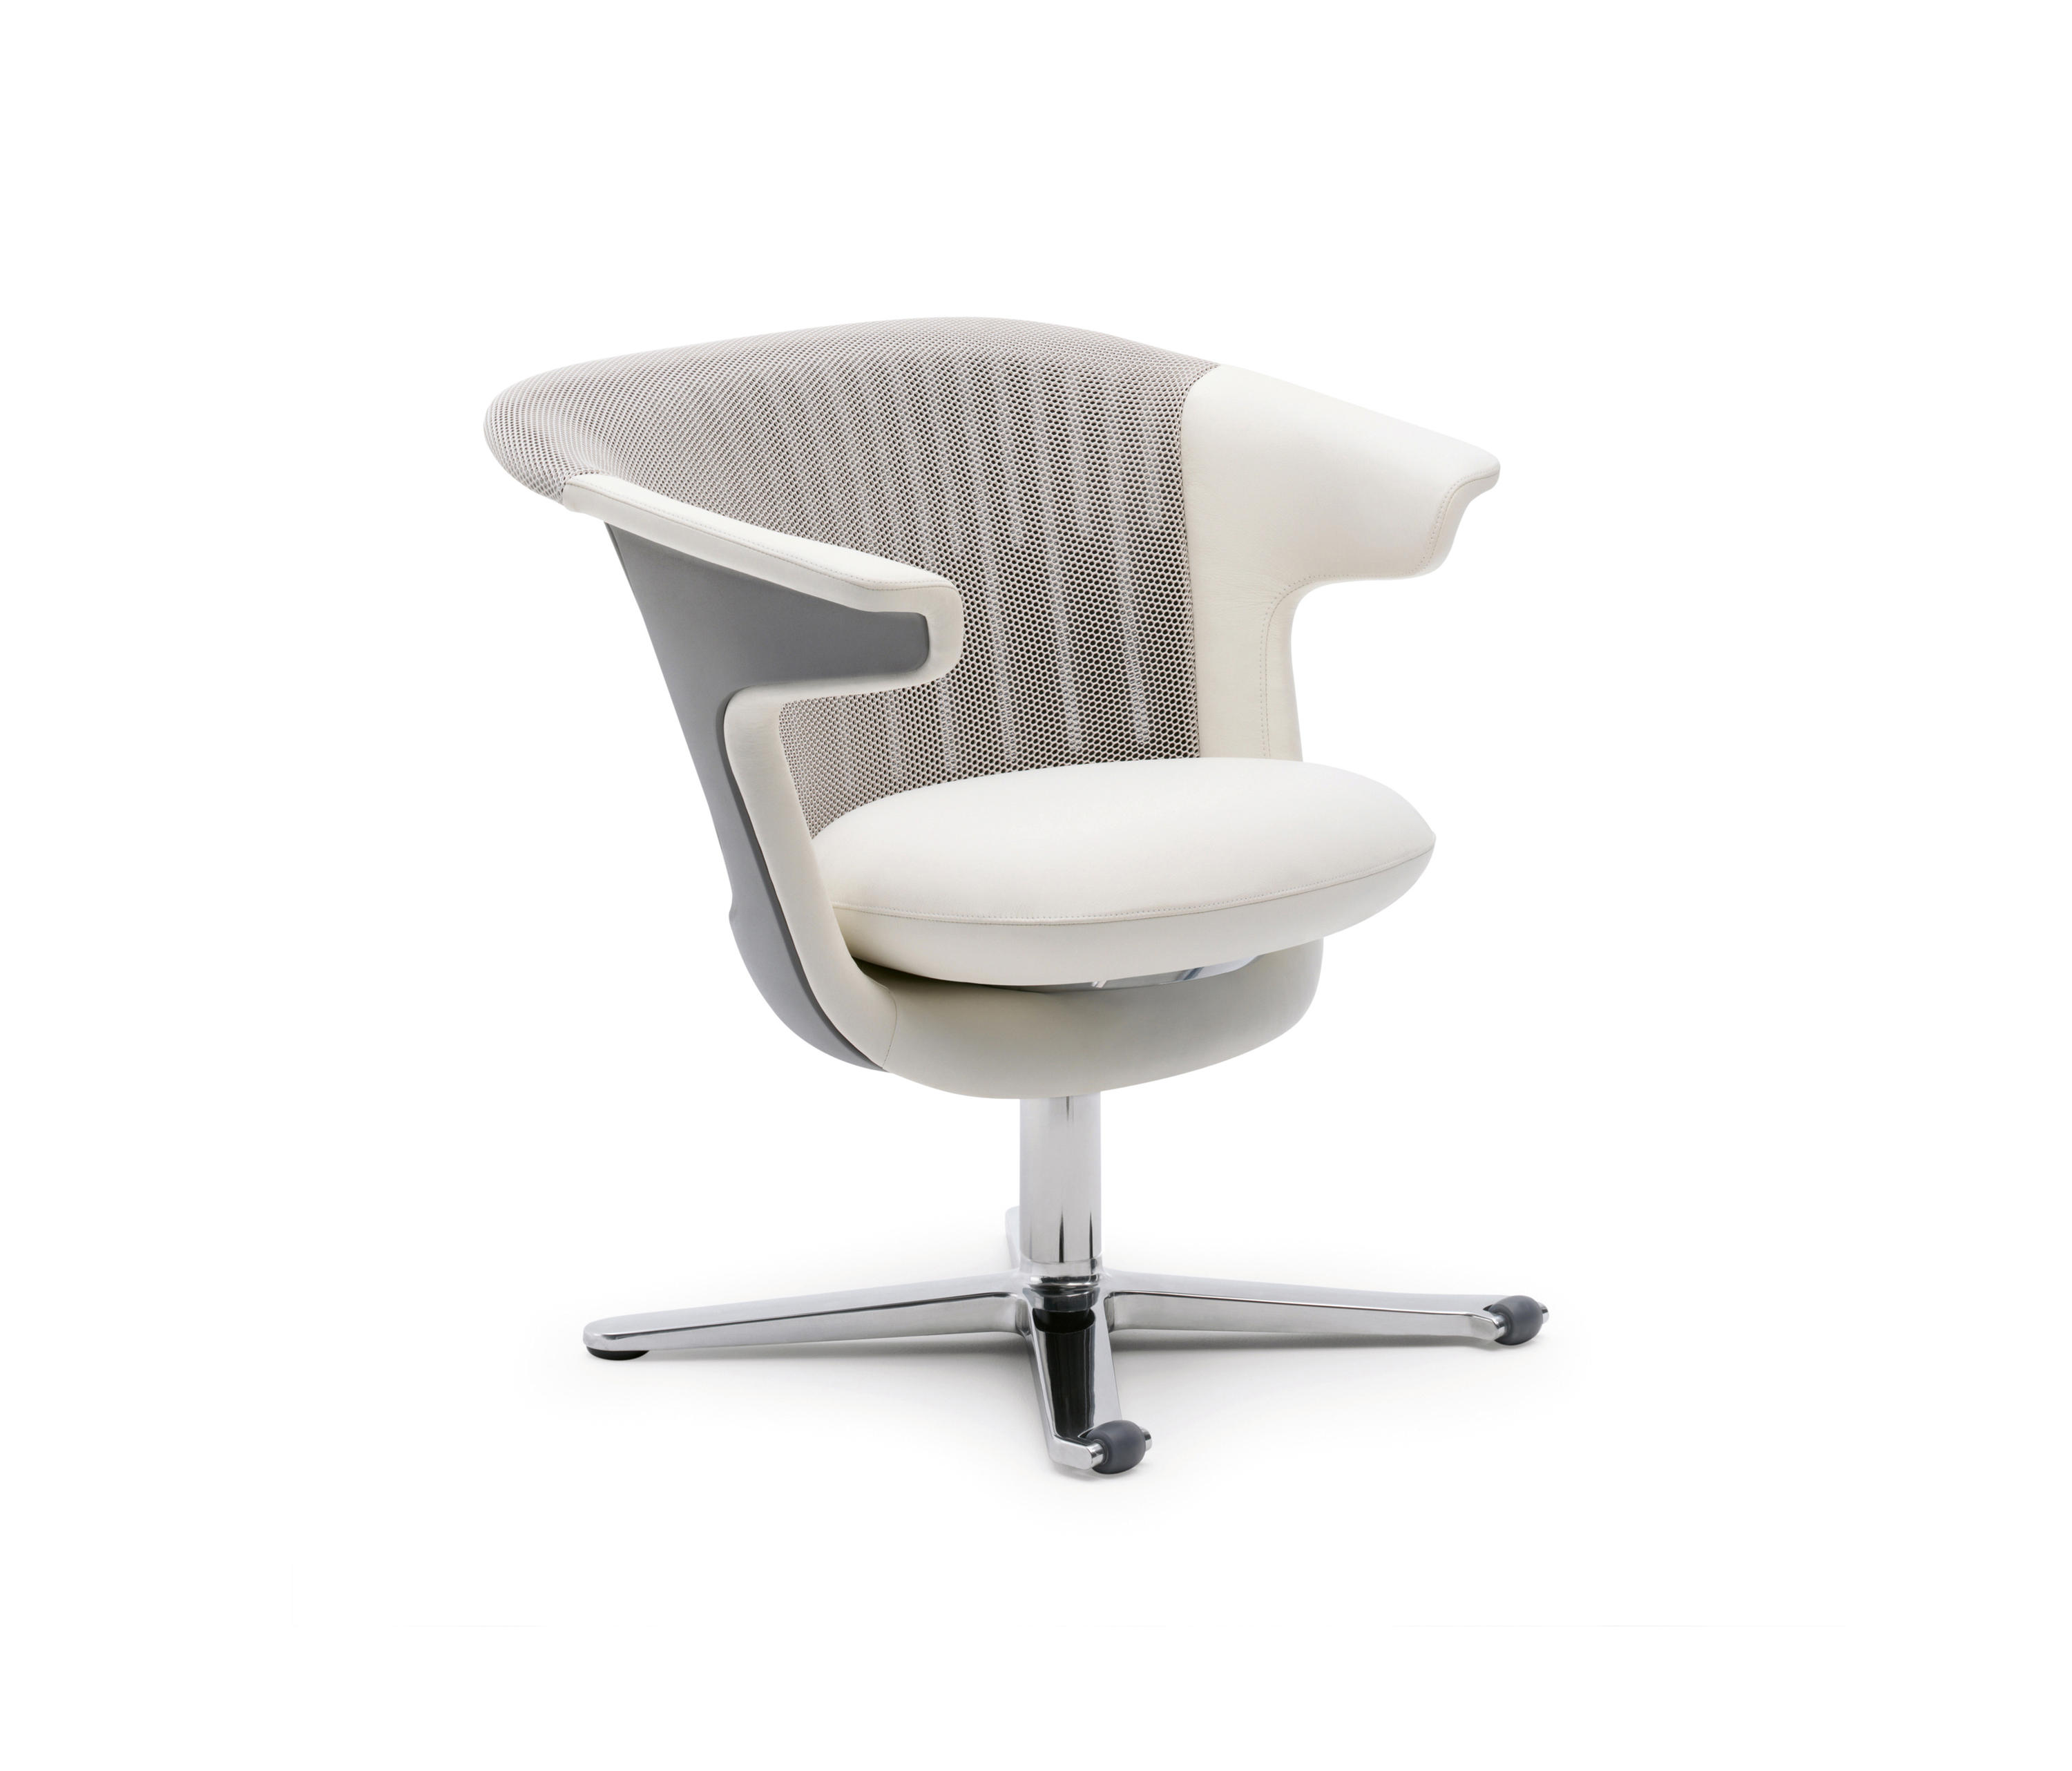 Steelcase lounge chairs - I2i By Steelcase Lounge Chairs